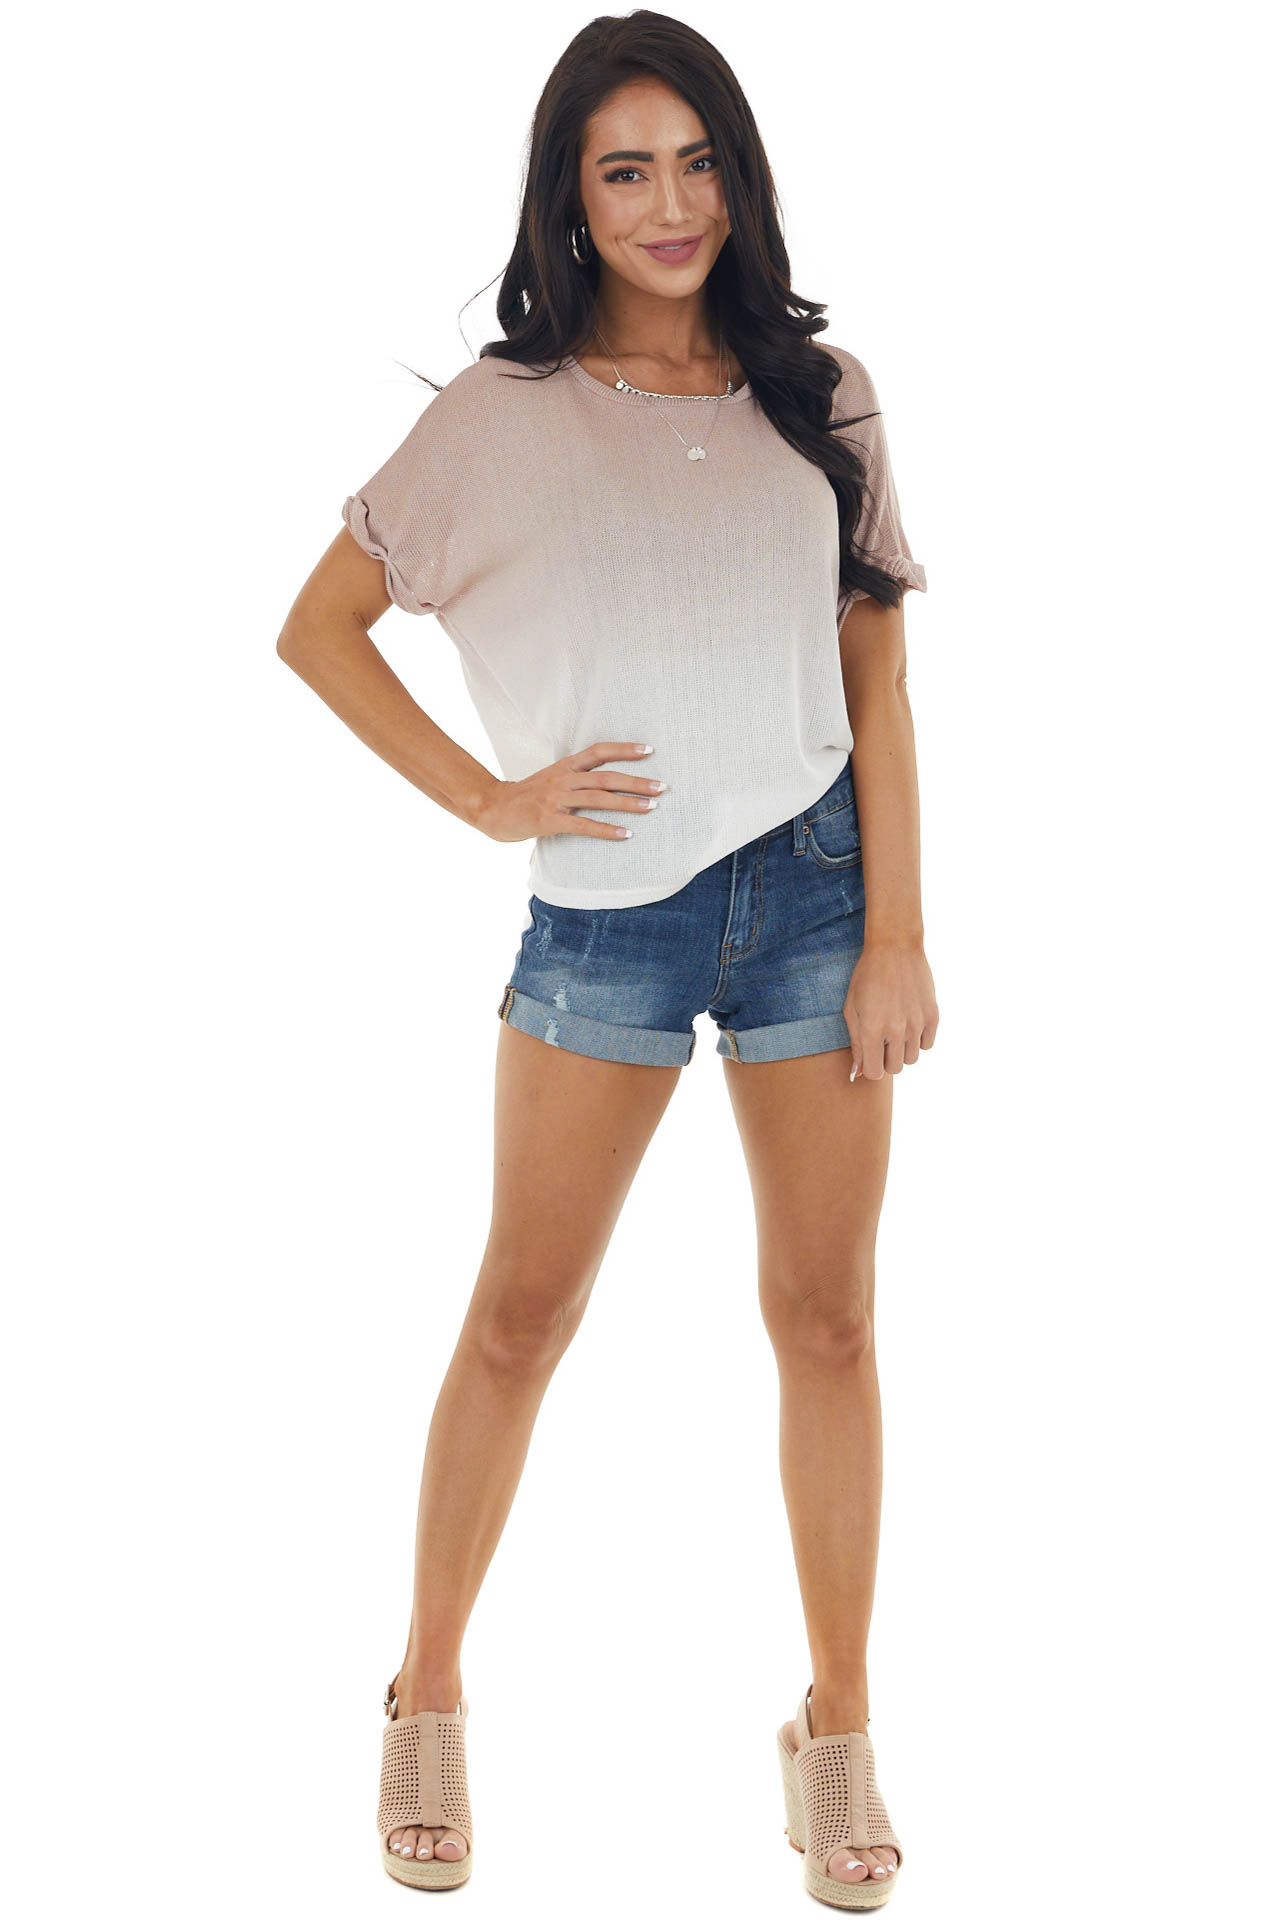 Dusty Rose and Ivory Ombre Loose Knit Short Sleeve Top